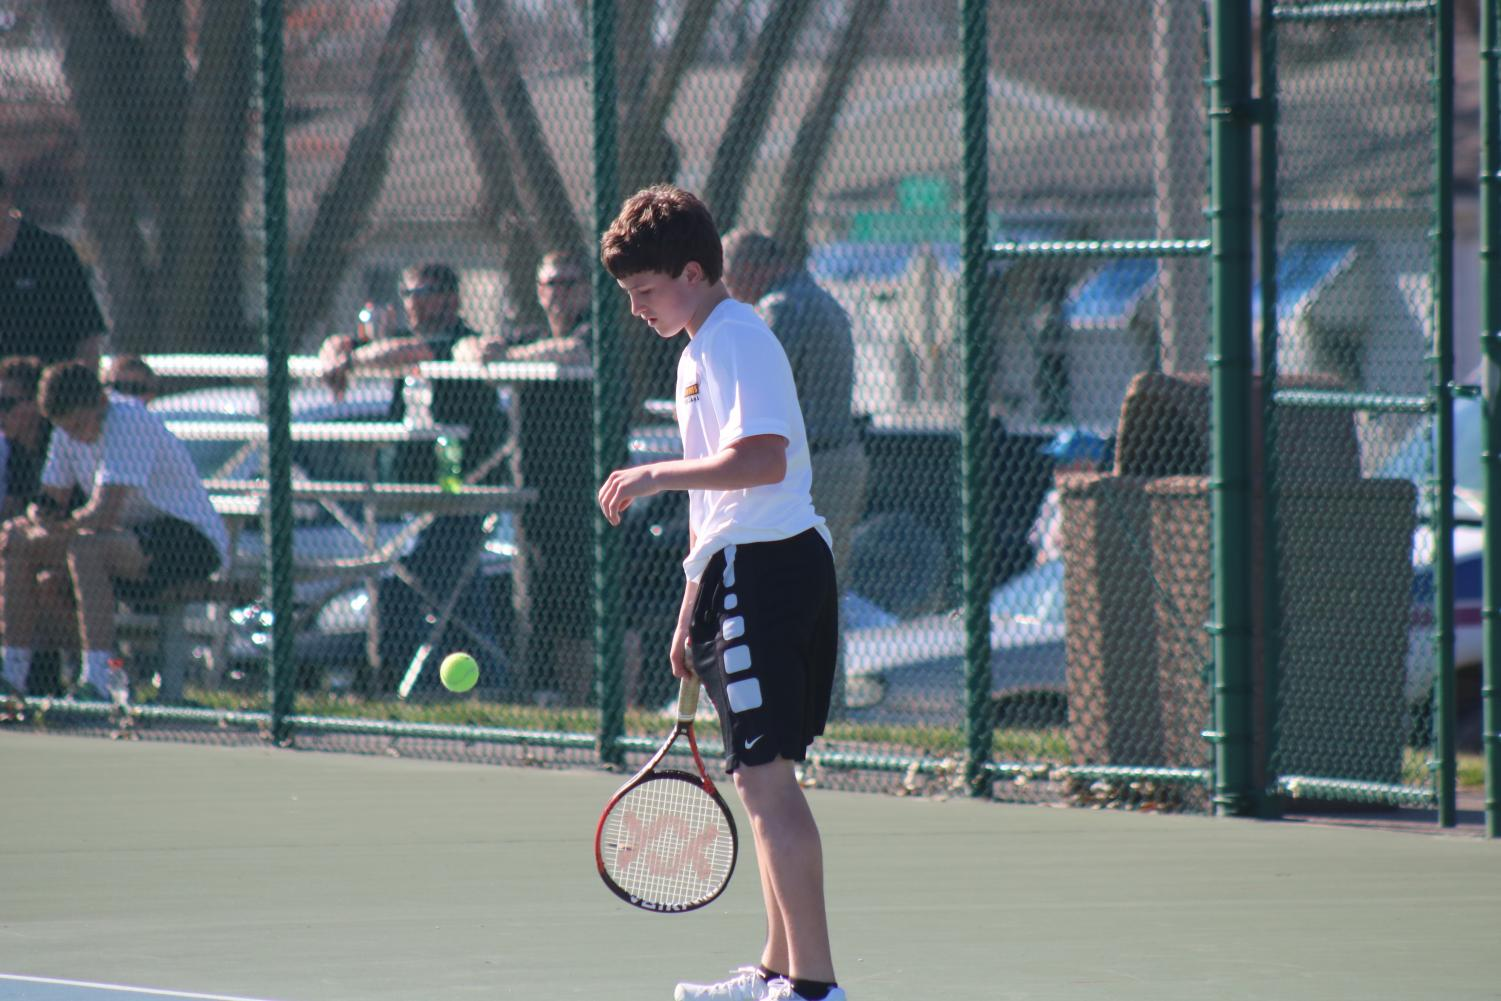 Sophomore Grant Sturm takes a breath before serving to his opponent. This is Sturm's first year playing tennis. He is undefeated in the #6 spot thus far, after topping challengers from Kuemper Catholic, Shenandoah, and Glenwood.